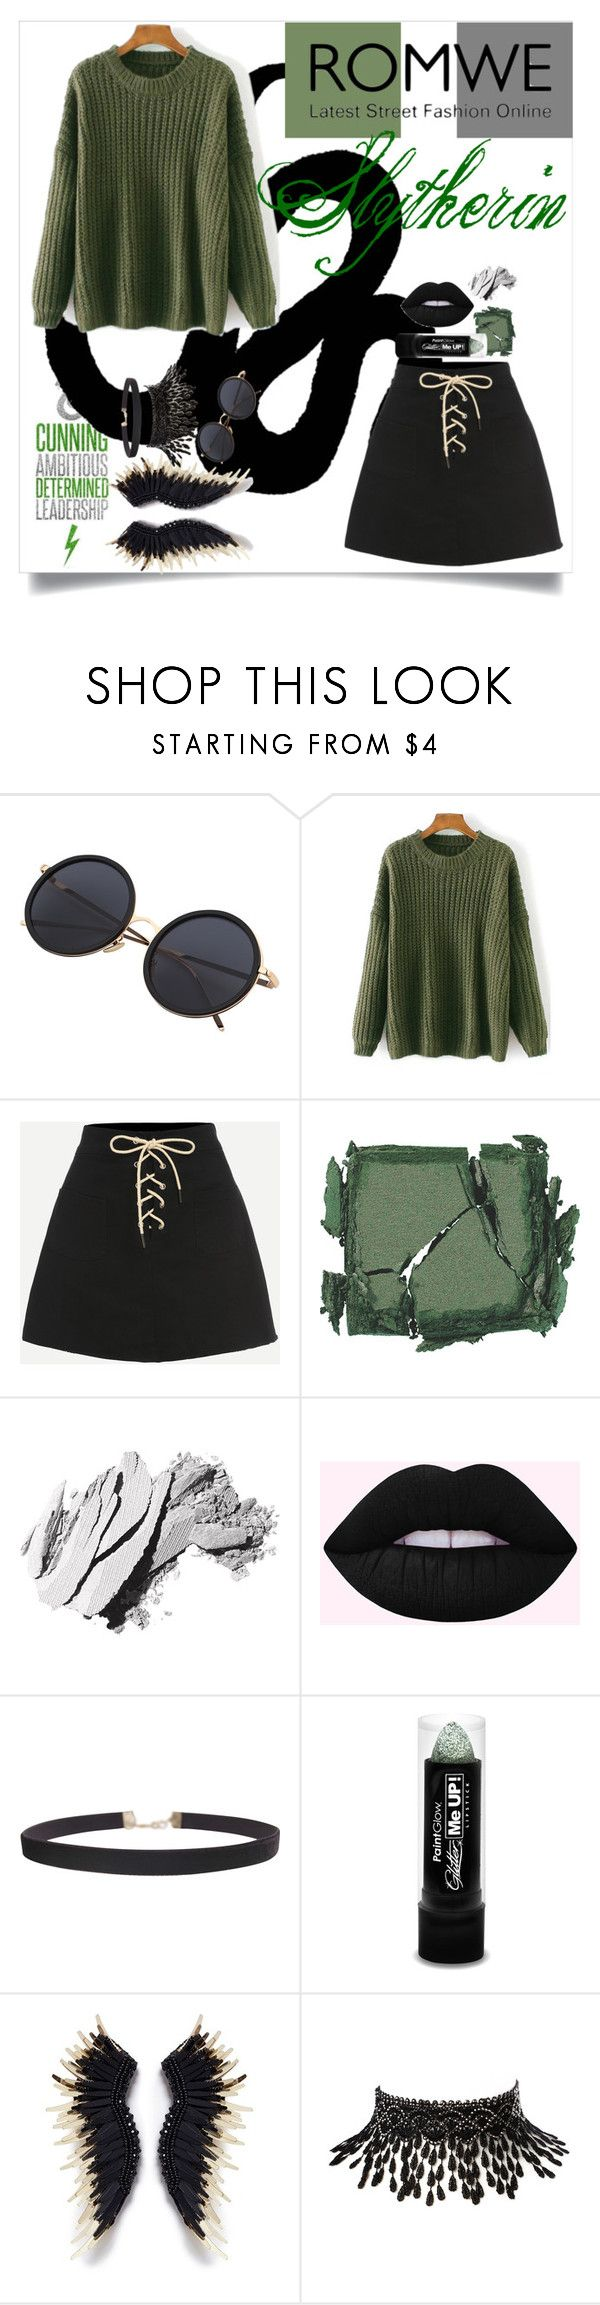 """""""Slytherin aesthetics"""" by katreesespieces ❤ liked on Polyvore featuring Surratt, Bobbi Brown Cosmetics, Humble Chic, Mignonne Gavigan, Amrita Singh, harrypotter, slytherin and hogwarts"""